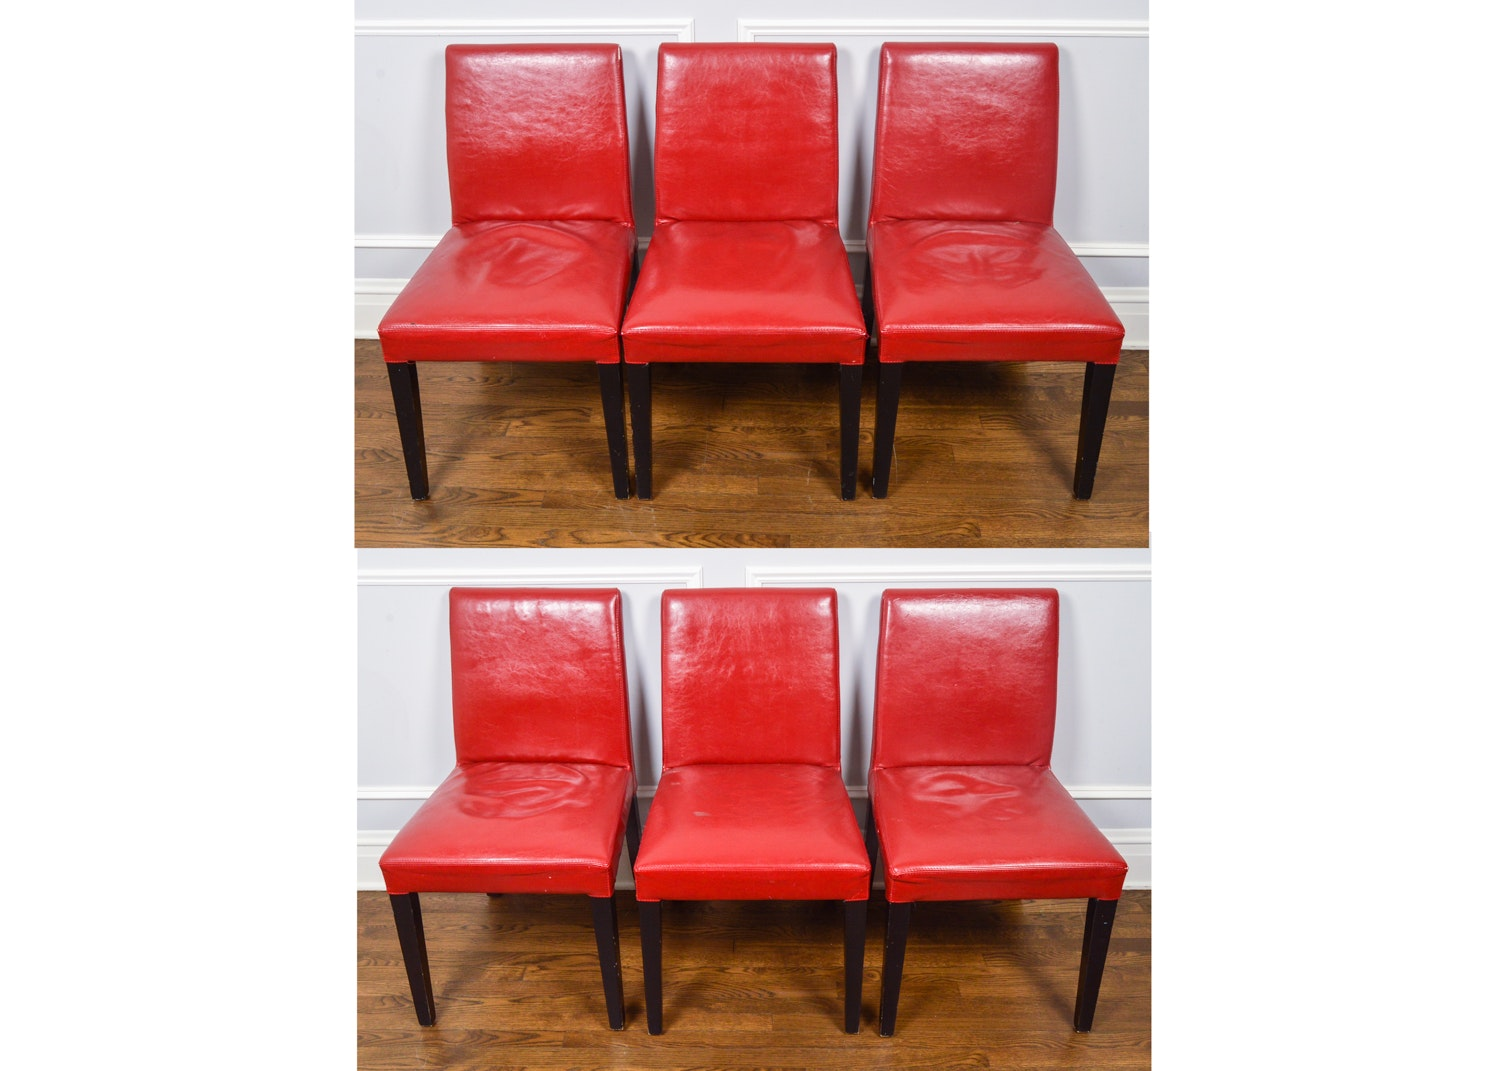 Set of Red Upholstered Dining Chairs By Crate & Barrel